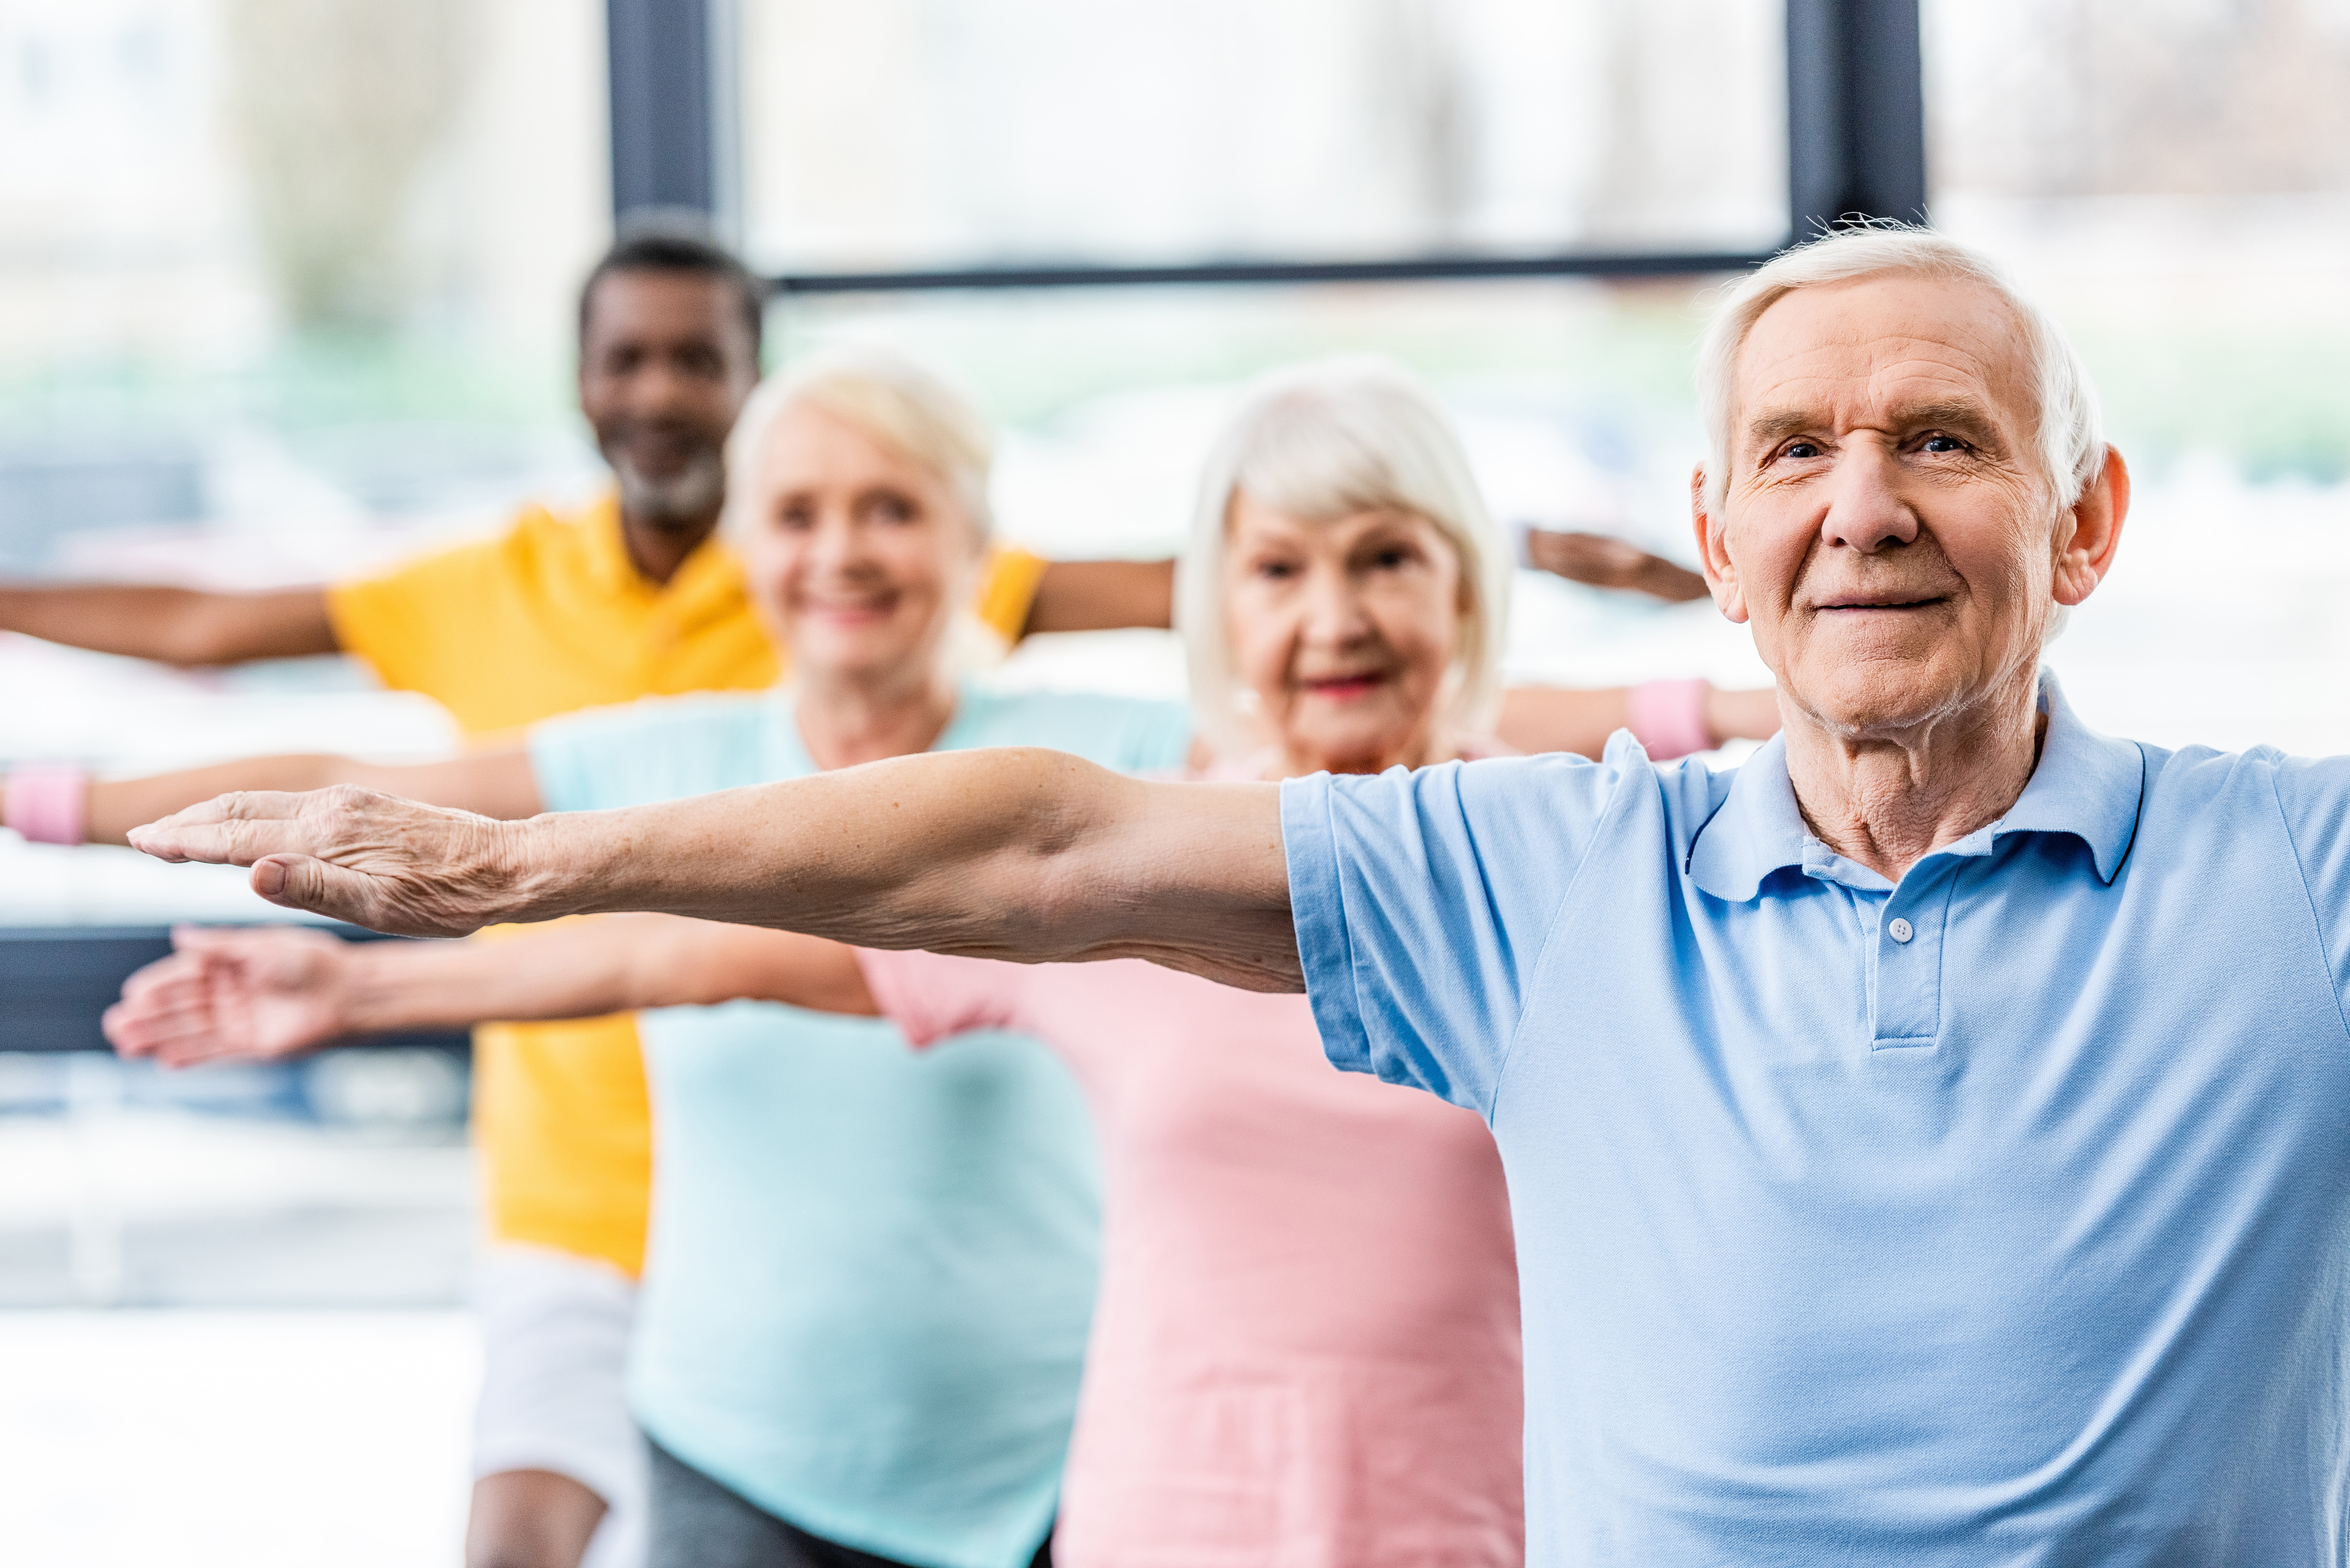 How to prevent and manage type 2 diabetes for seniors